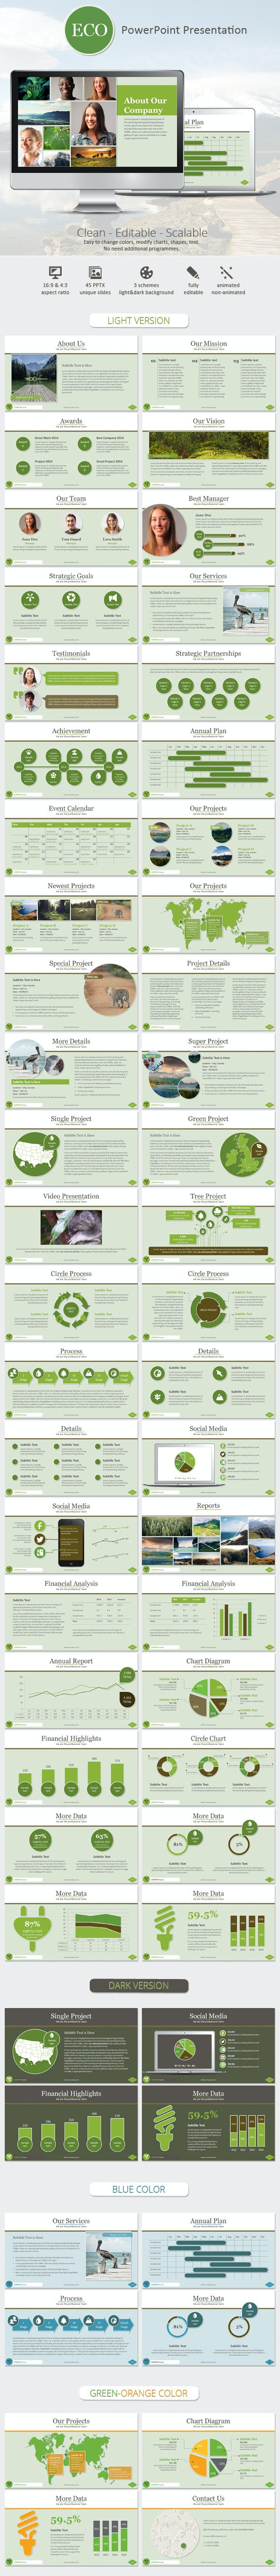 Eco PowerPoint Presentation Template - Business PowerPoint Templates